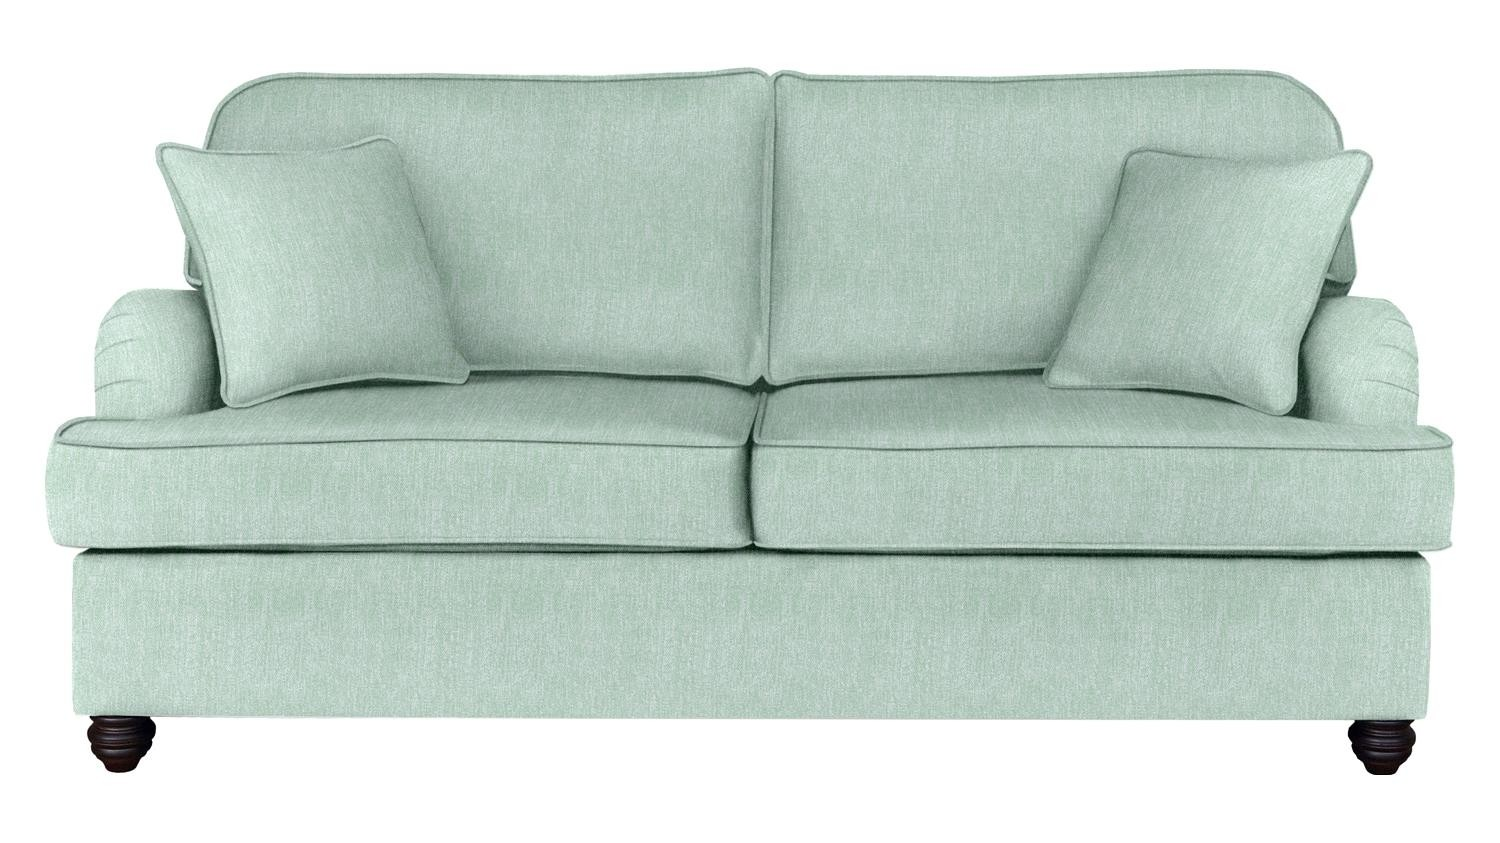 The Downton 3 Seater Sofa Bed